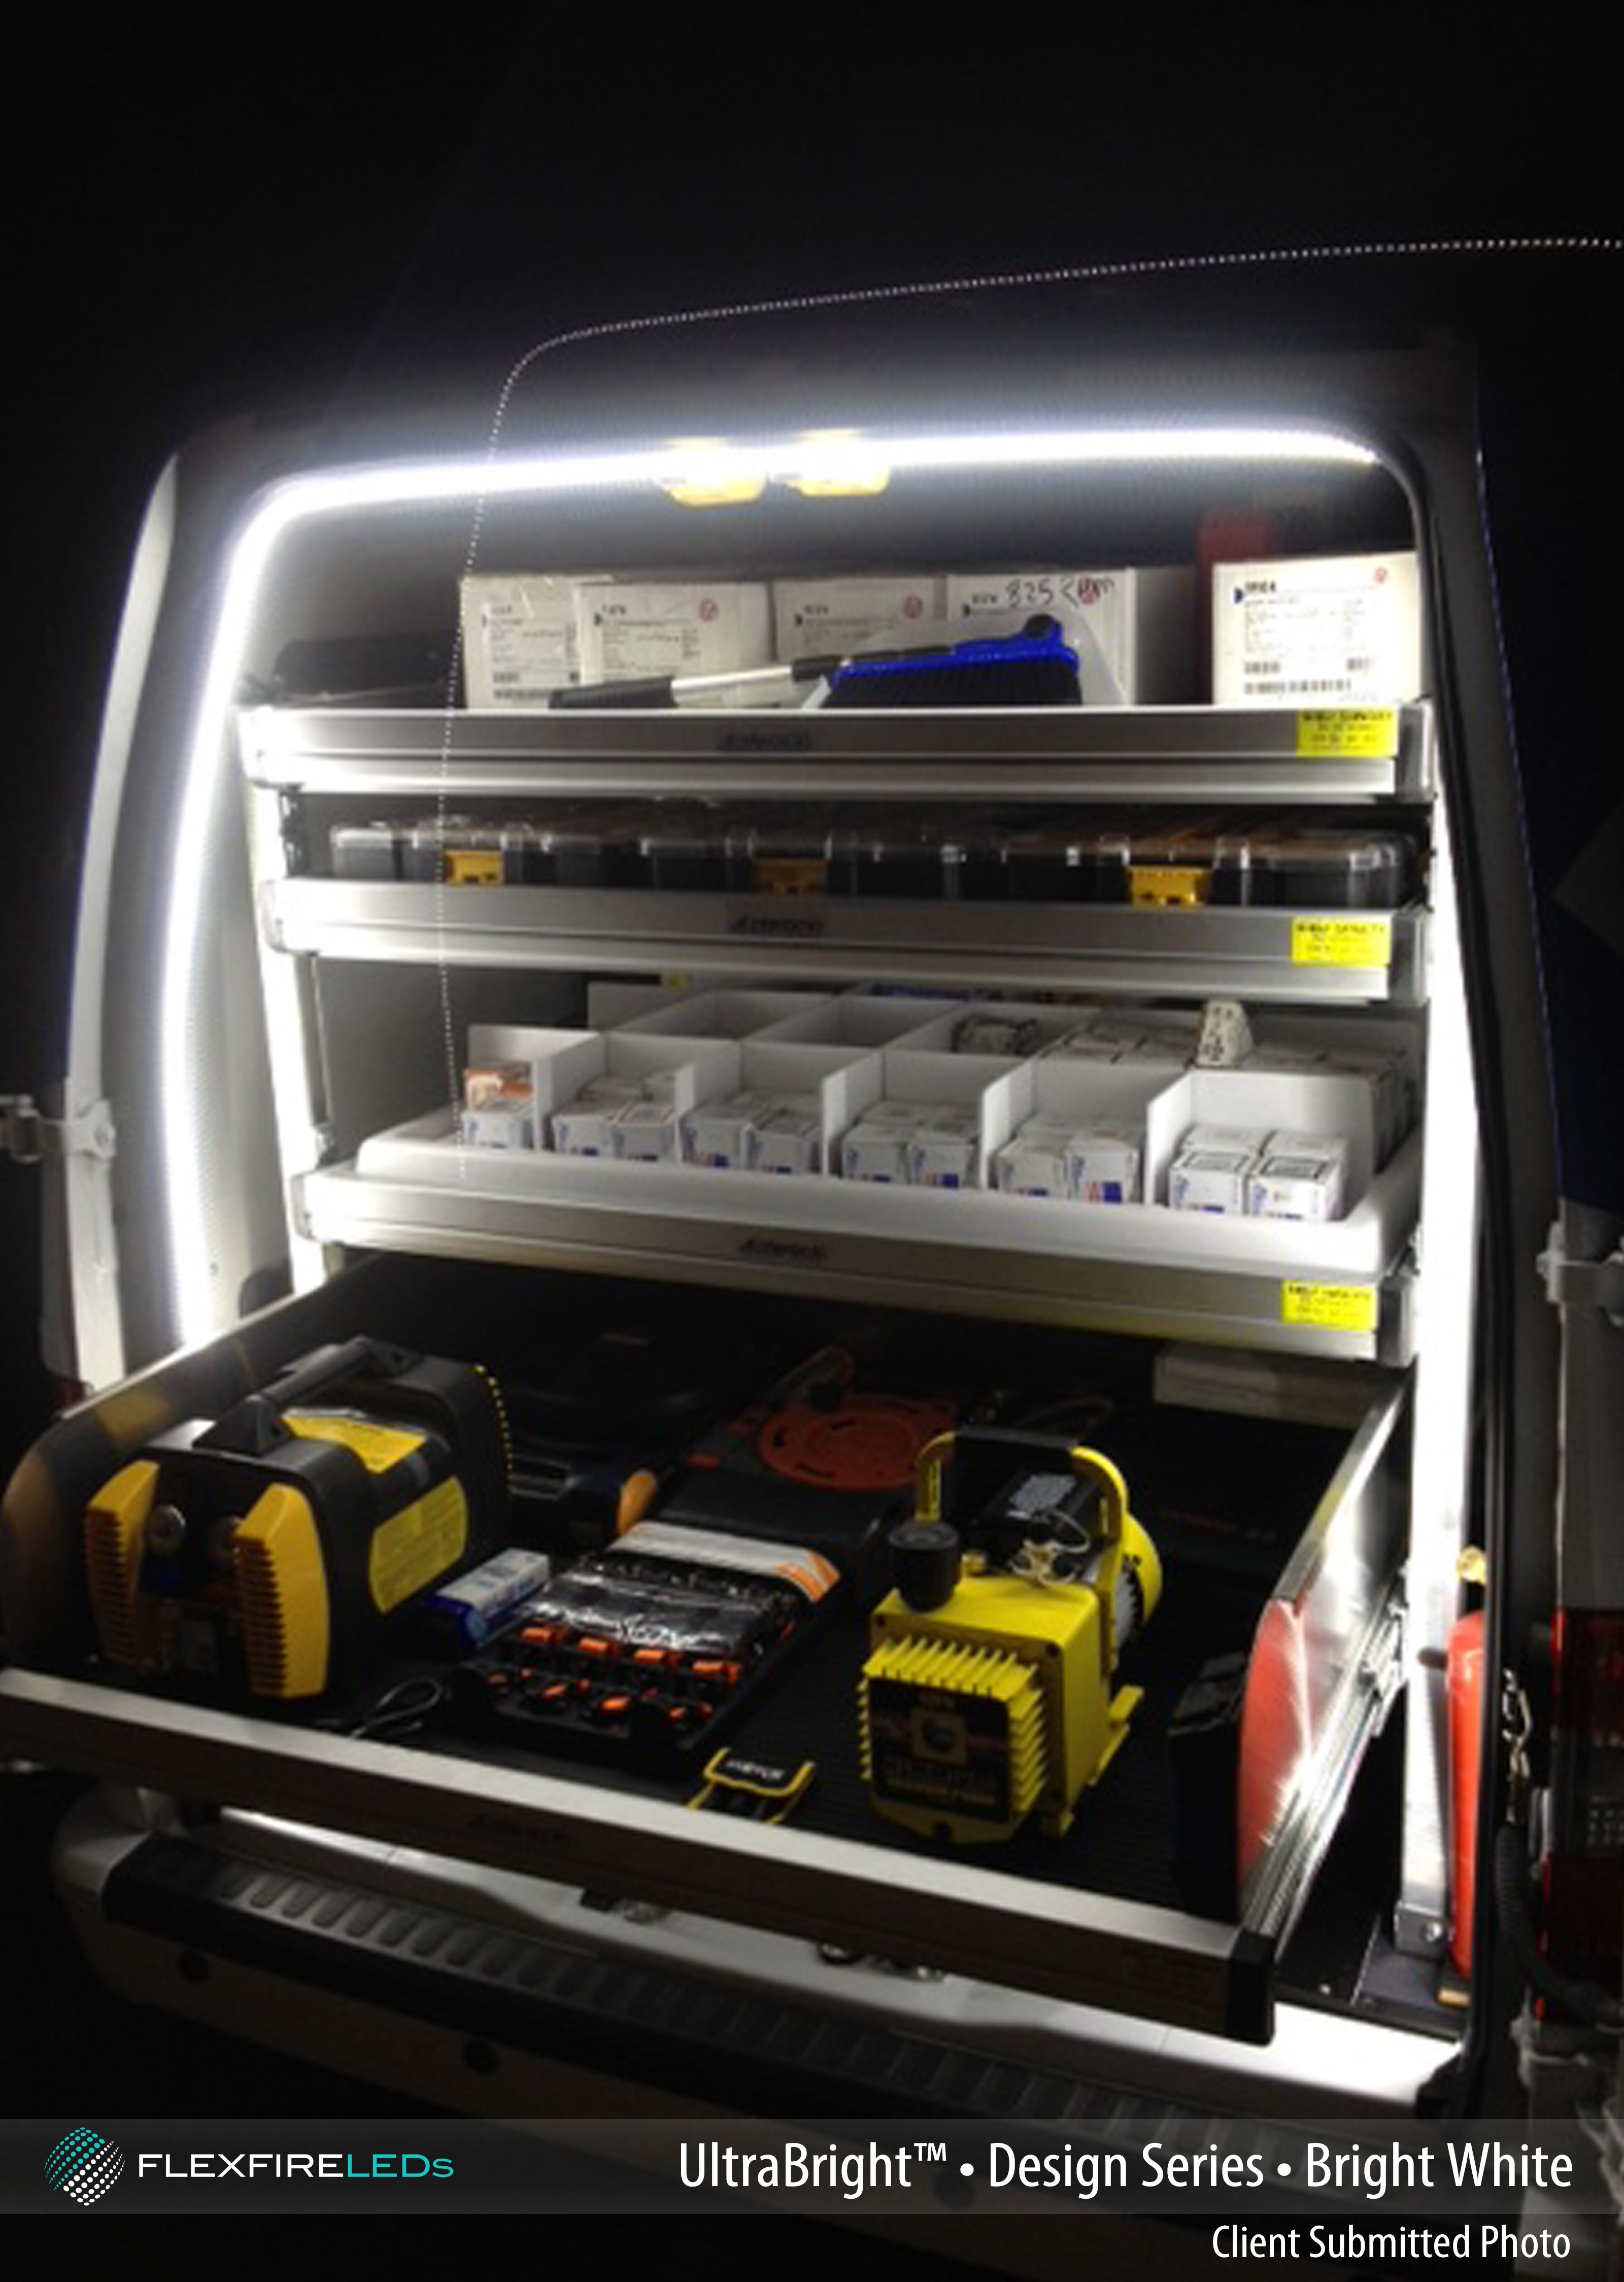 Led strip lights brighten up this work van making all the tools led strip lights brighten up this work van making all the tools easier to find tasklighting aloadofball Image collections